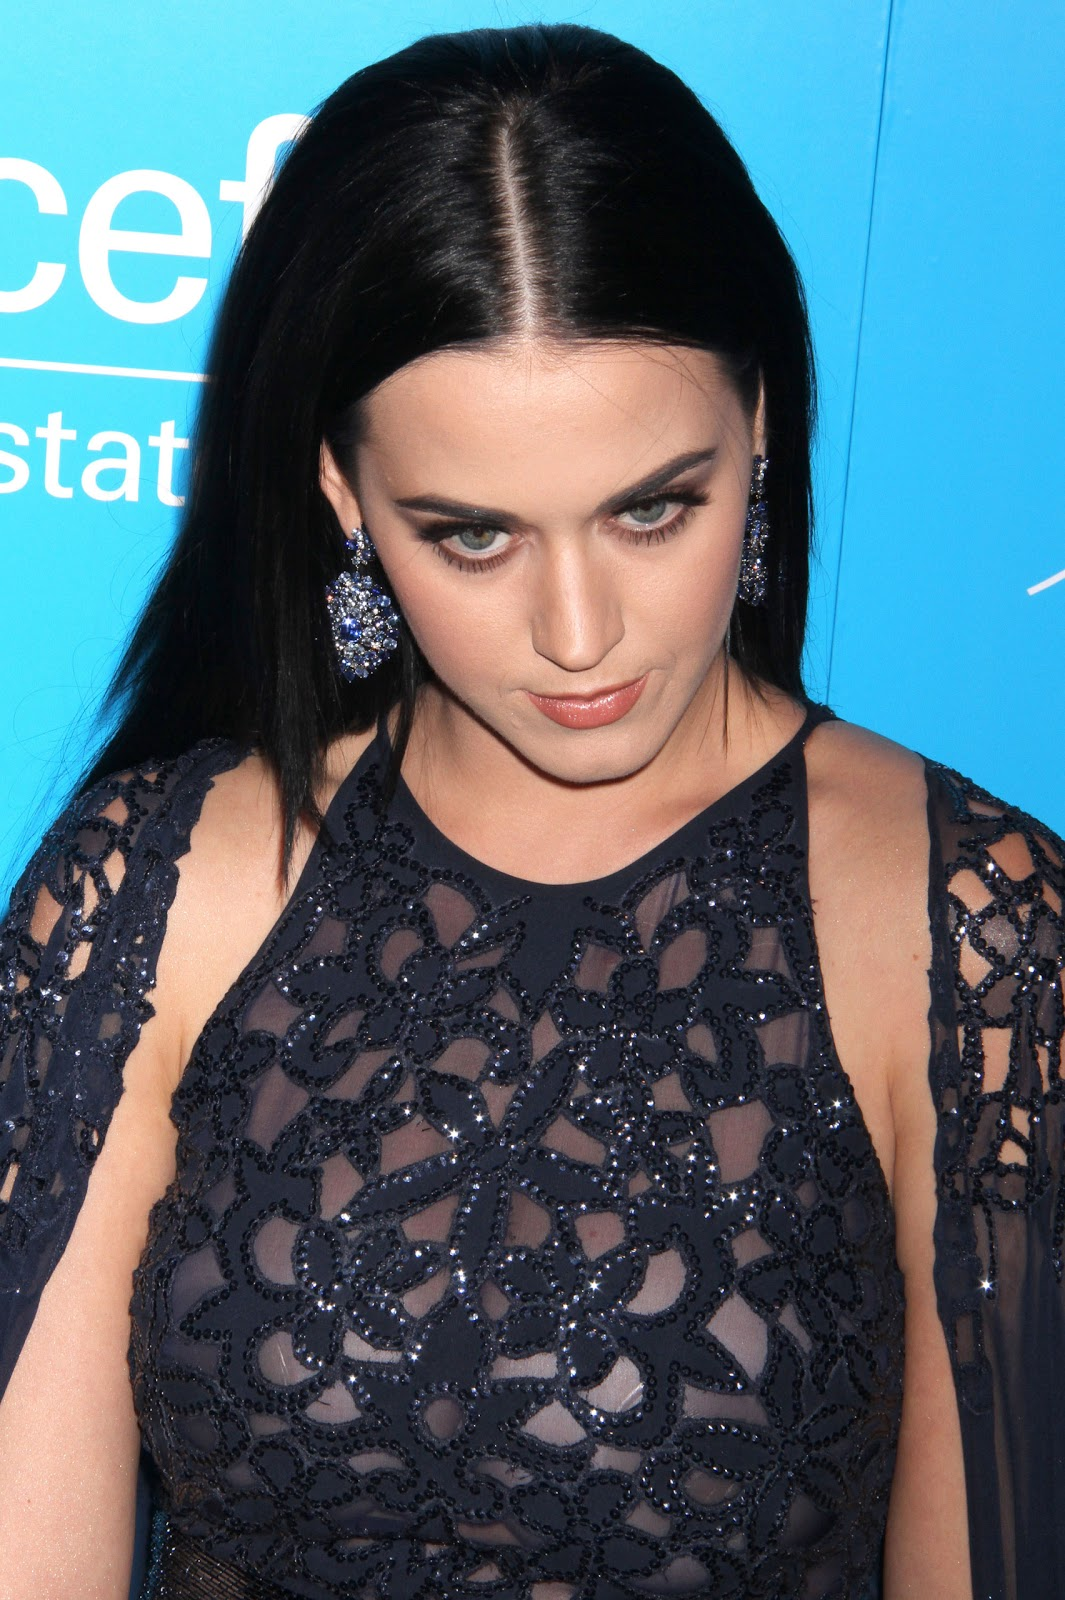 Hot pic: Katy Perry se... Katy Perry Videos